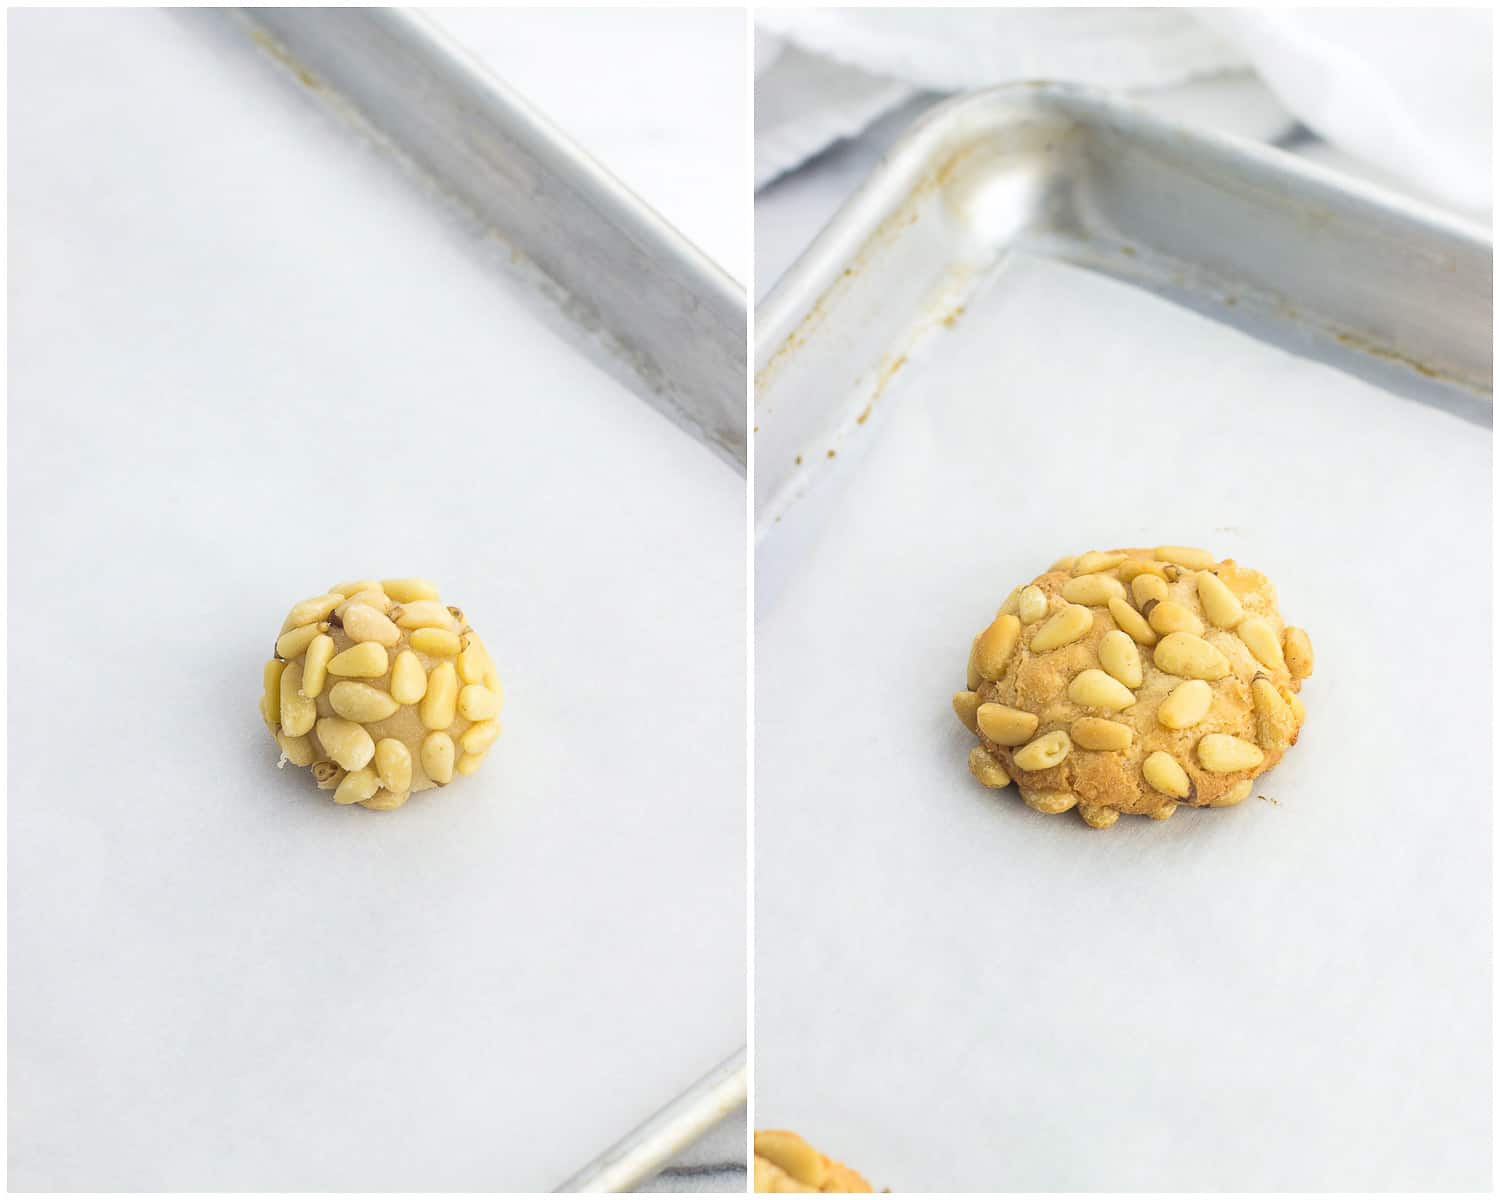 A picture of an unbaked pignoli cookie on a parchment-lined baking sheet next to a photo of a baked pignoli cookie on a baking sheet